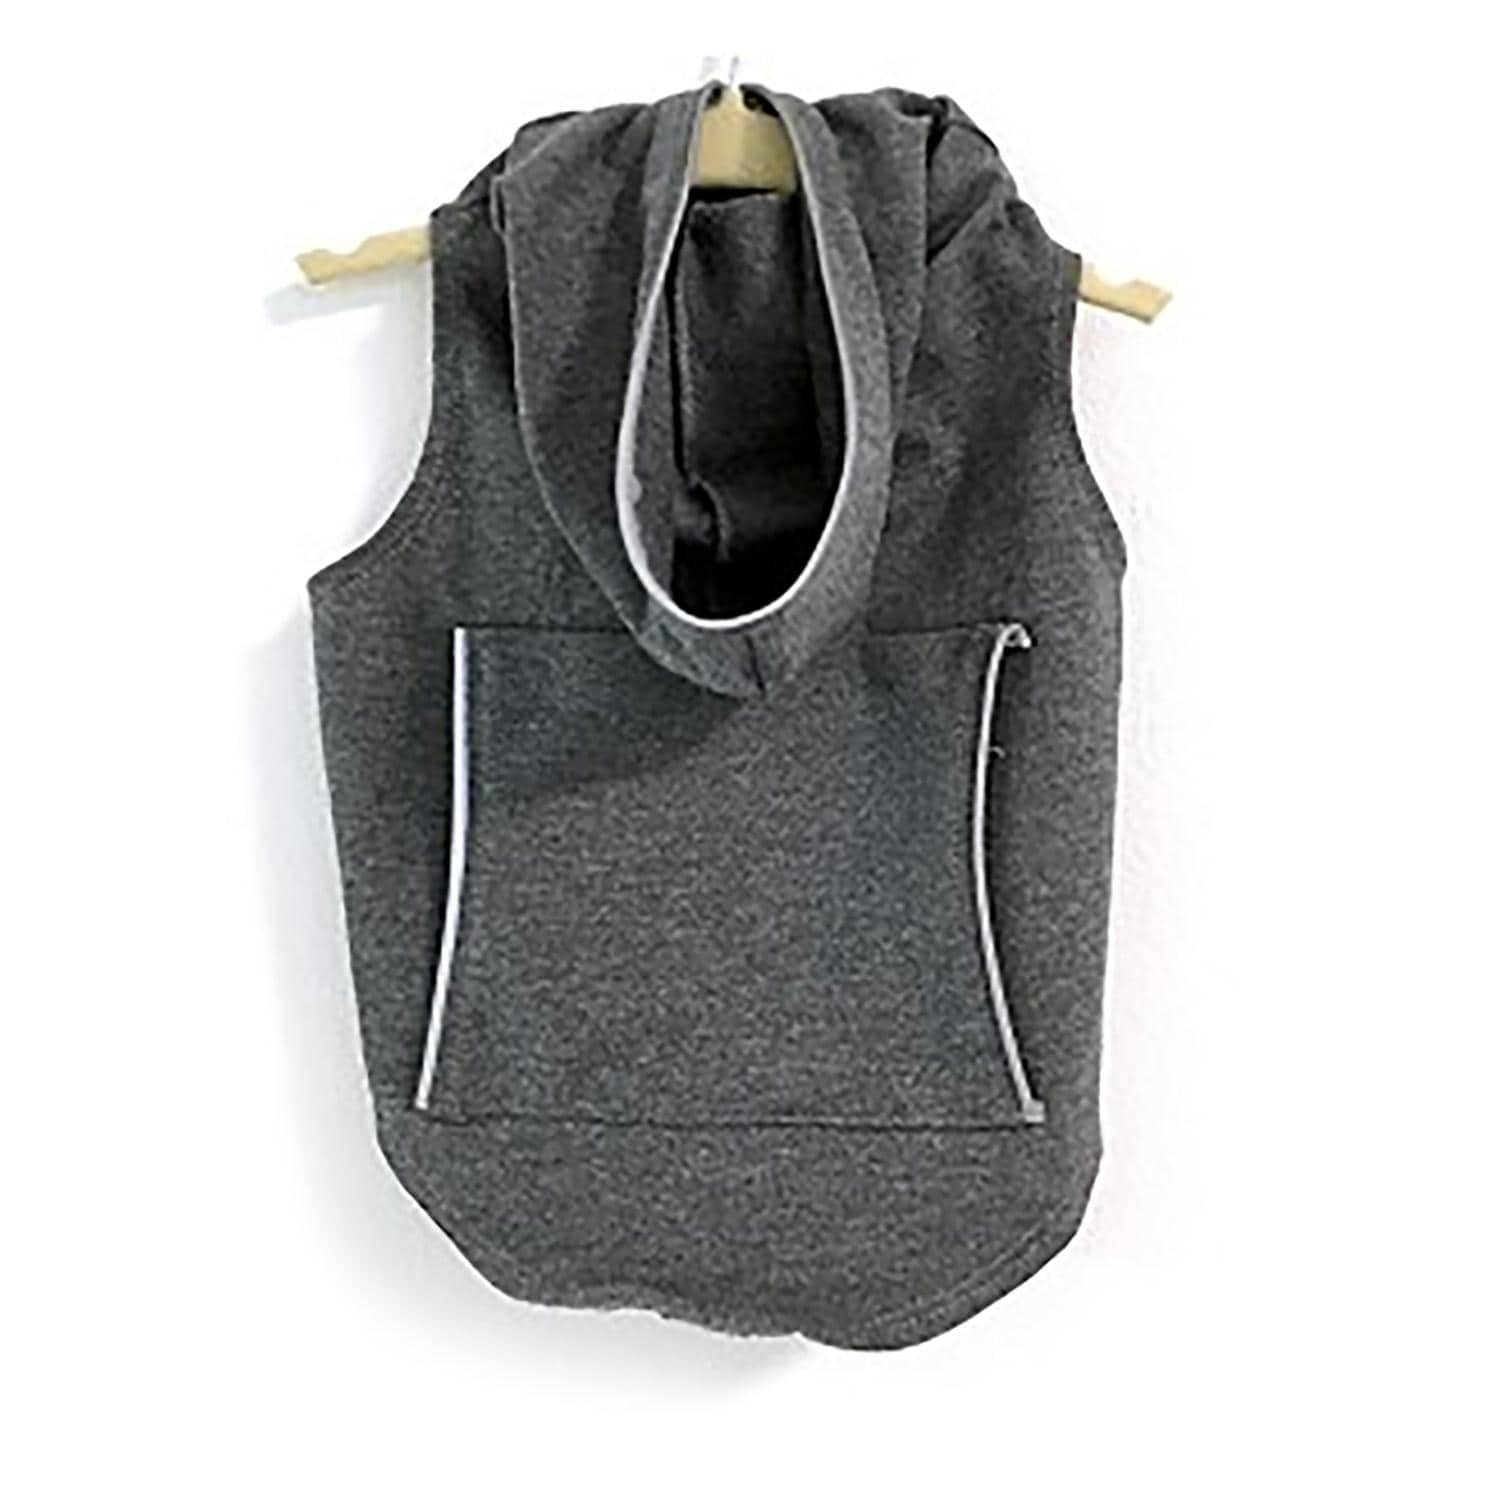 Daisy and Lucy Reflective Dog Hoodie - Dark Heather Gray (Dark Heather Gray - X-Small)